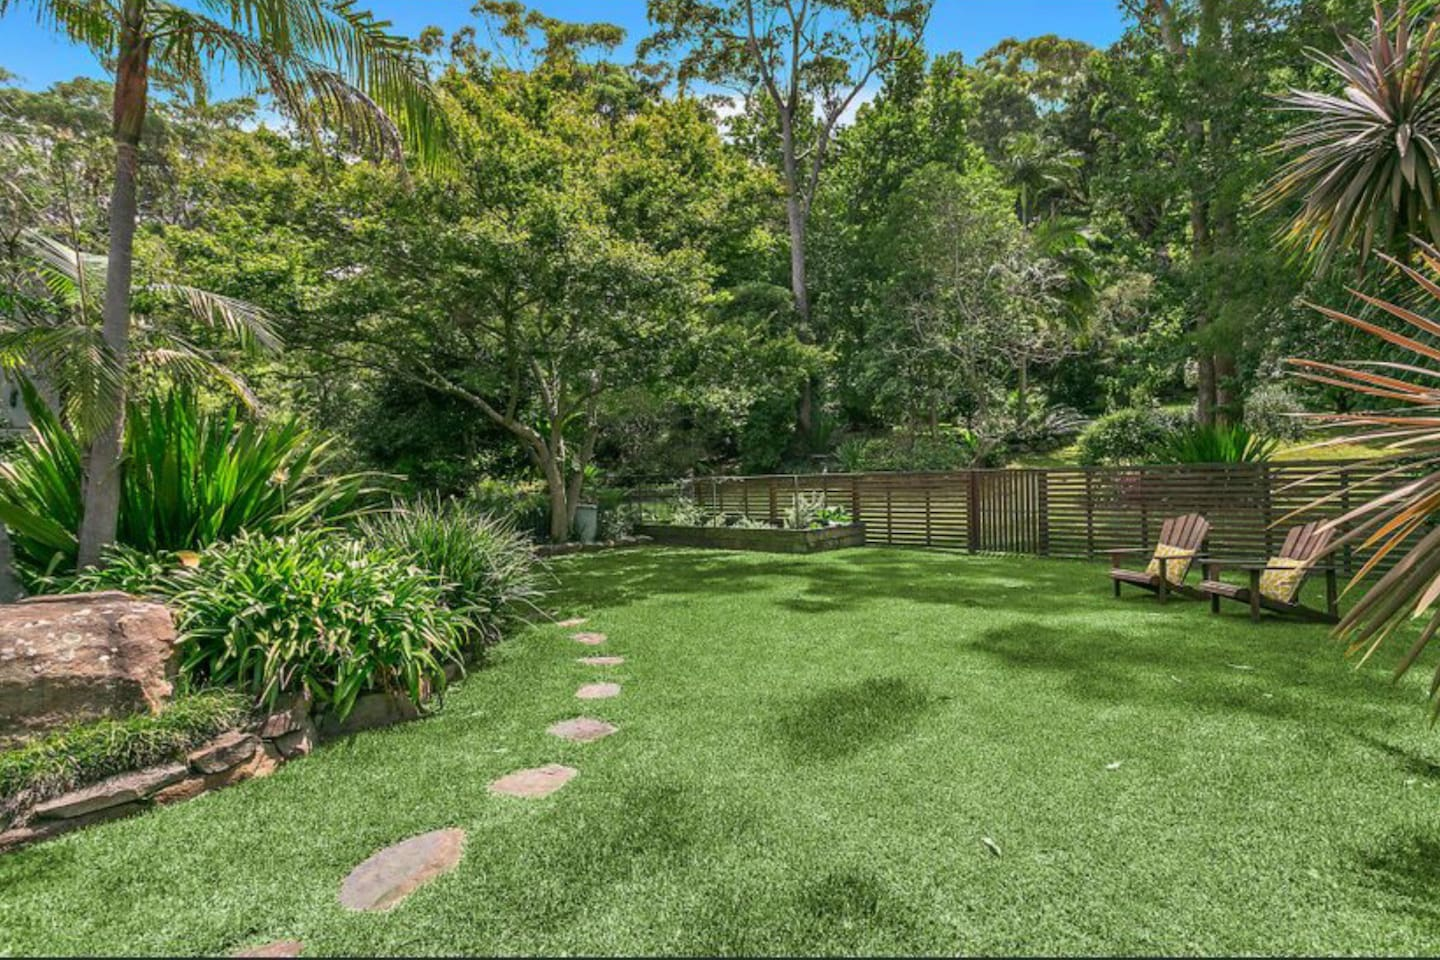 Large fenced yard with vege garden you can help yourself to